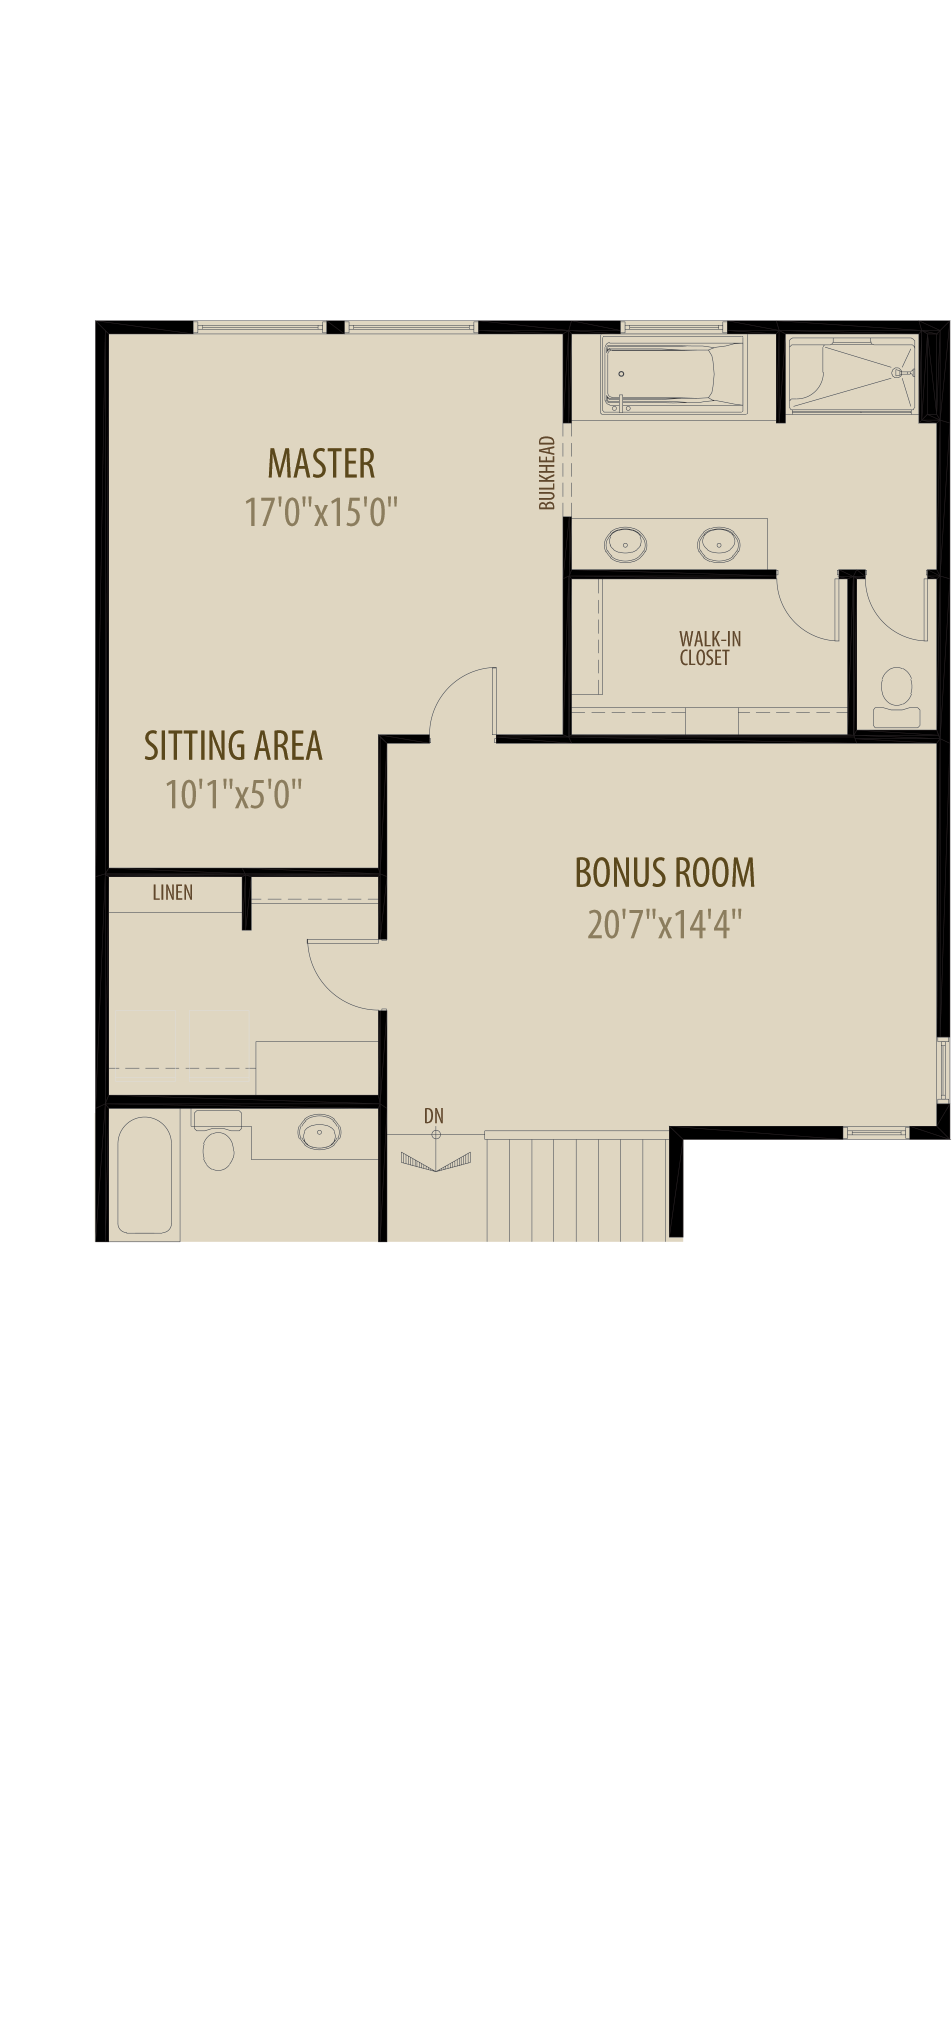 Option 4 Centre Bonus Room